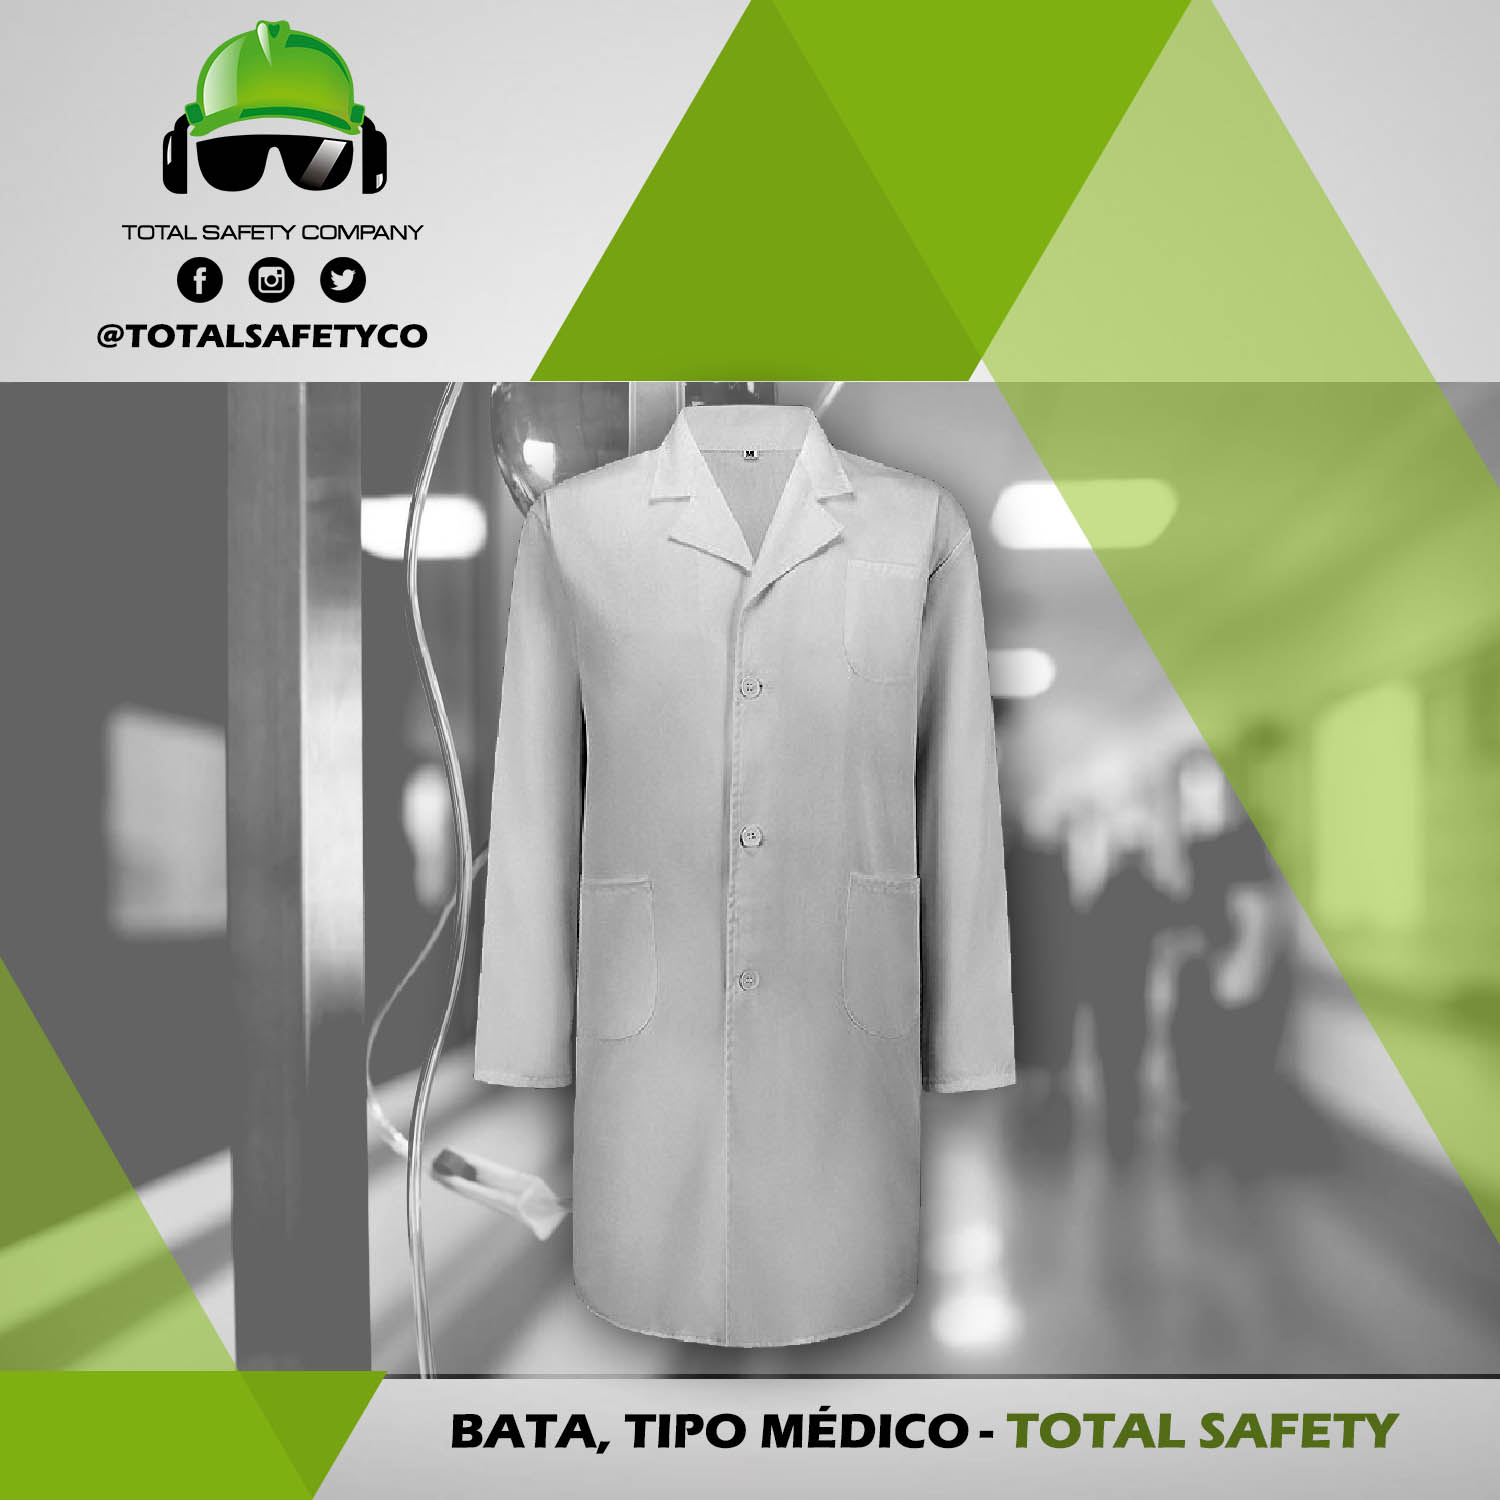 Bata tipo médico - TOTAL SAFETY